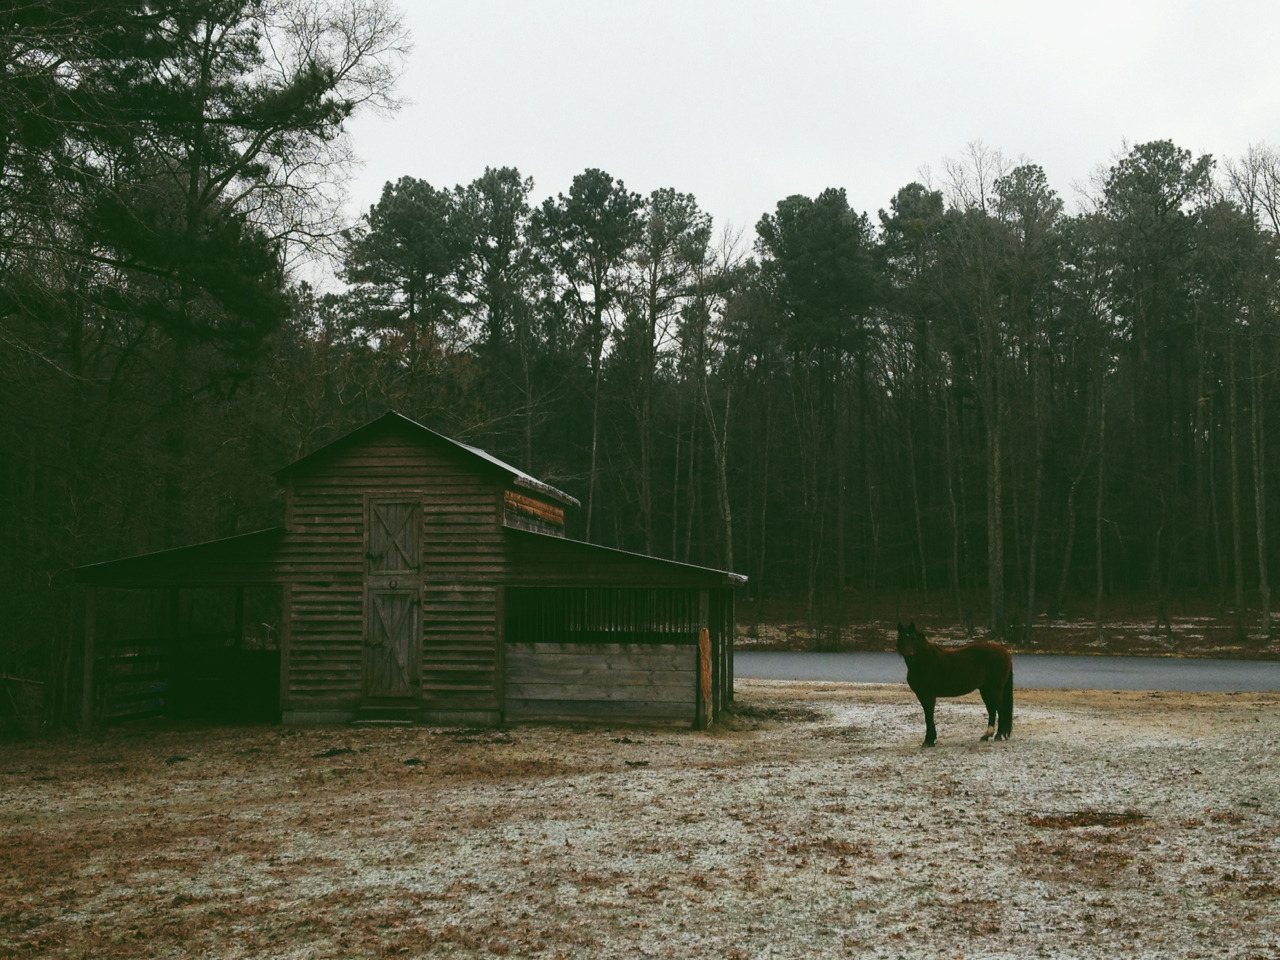 Horse Barn. Chapel Hill, NC, USA. January 2013.